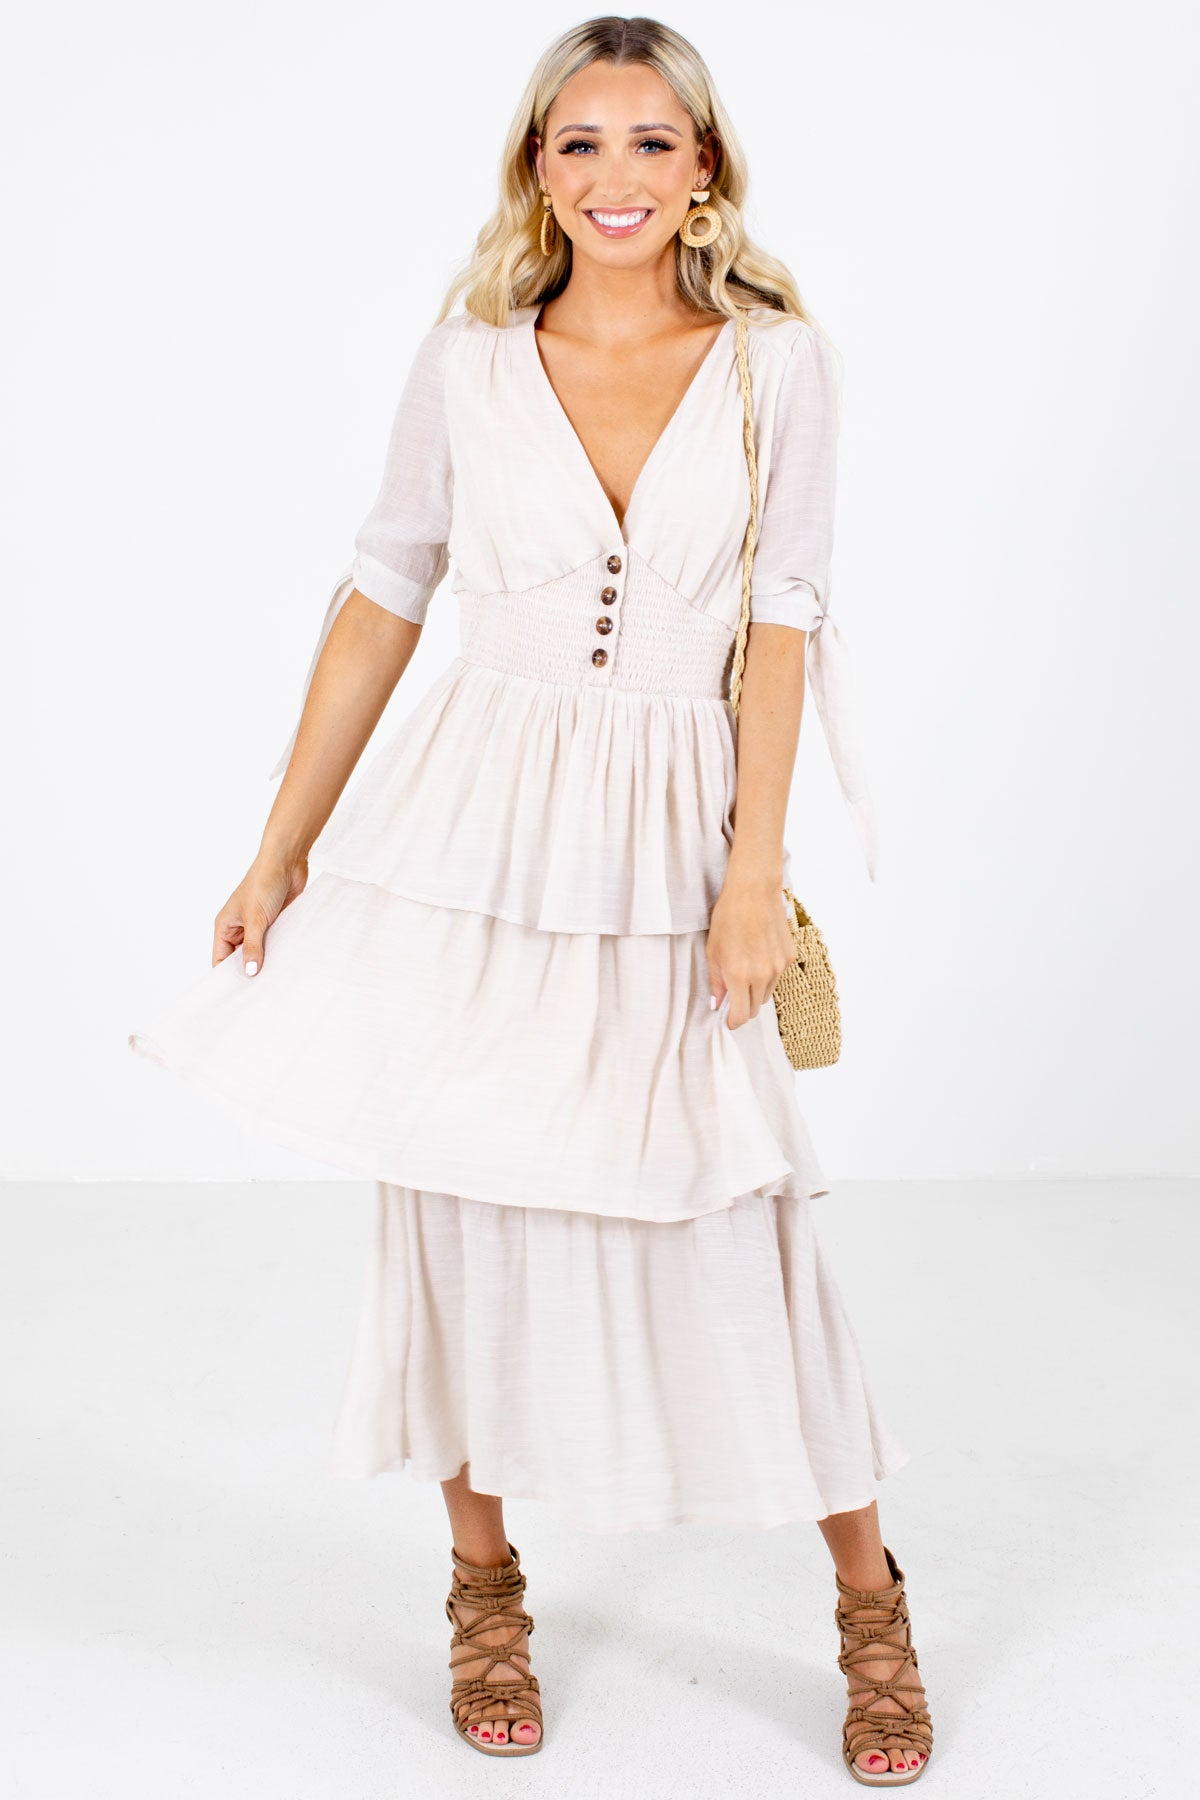 Beige Ruffle Detailed Boutique Maxi Dresses for Women